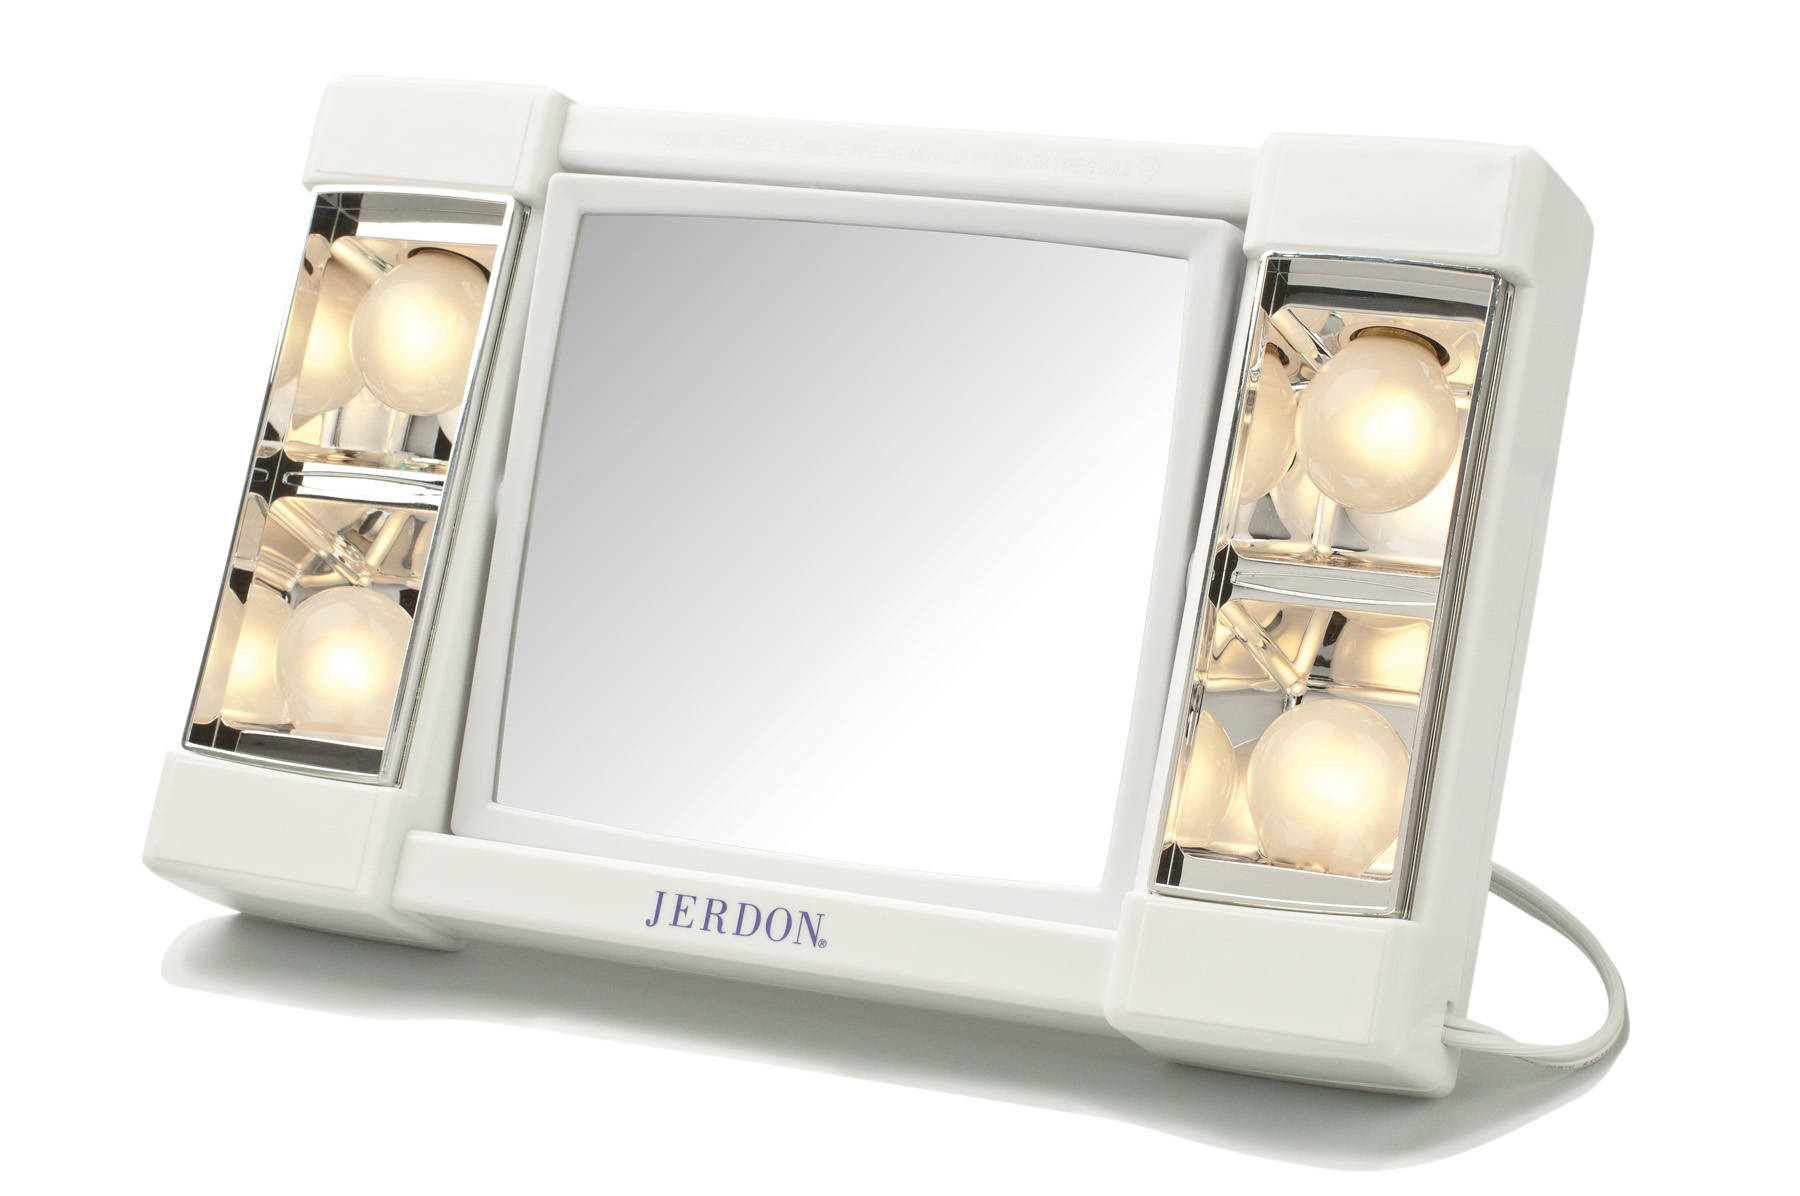 Jerdon Euro Tabletop Tri Fold 2 Sided Lighted Makeup